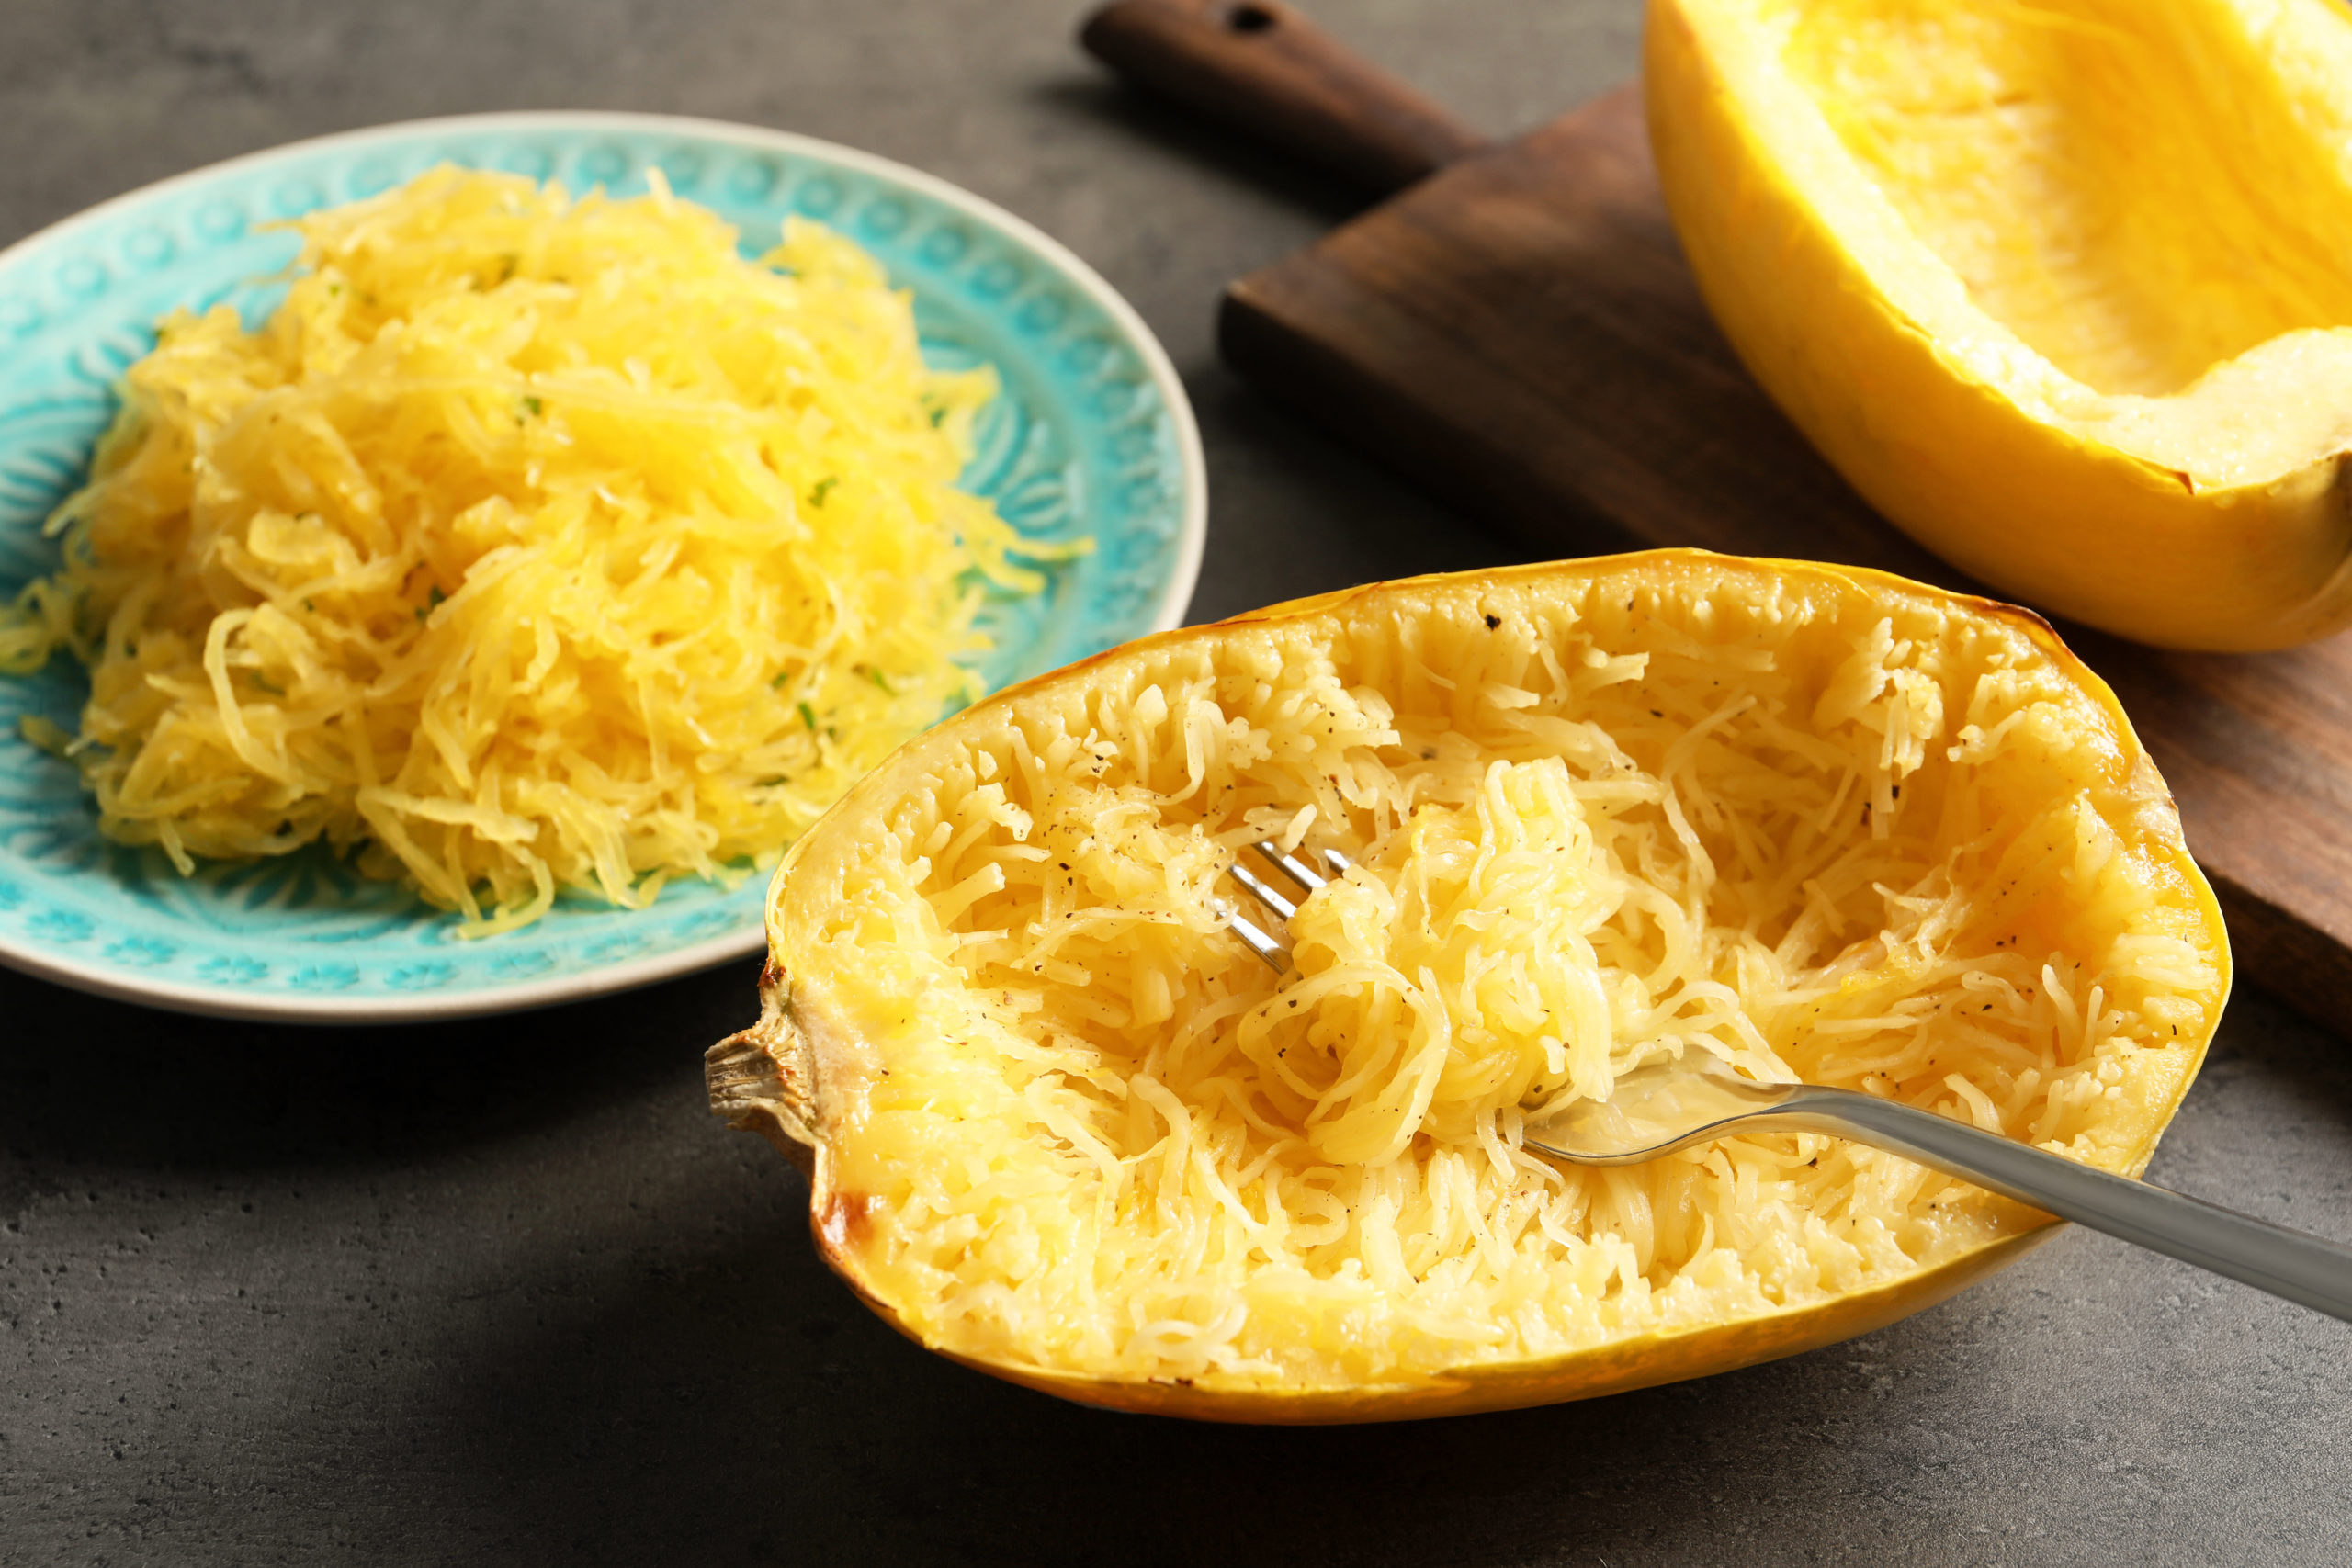 Cooked spaghetti squash and fork on table